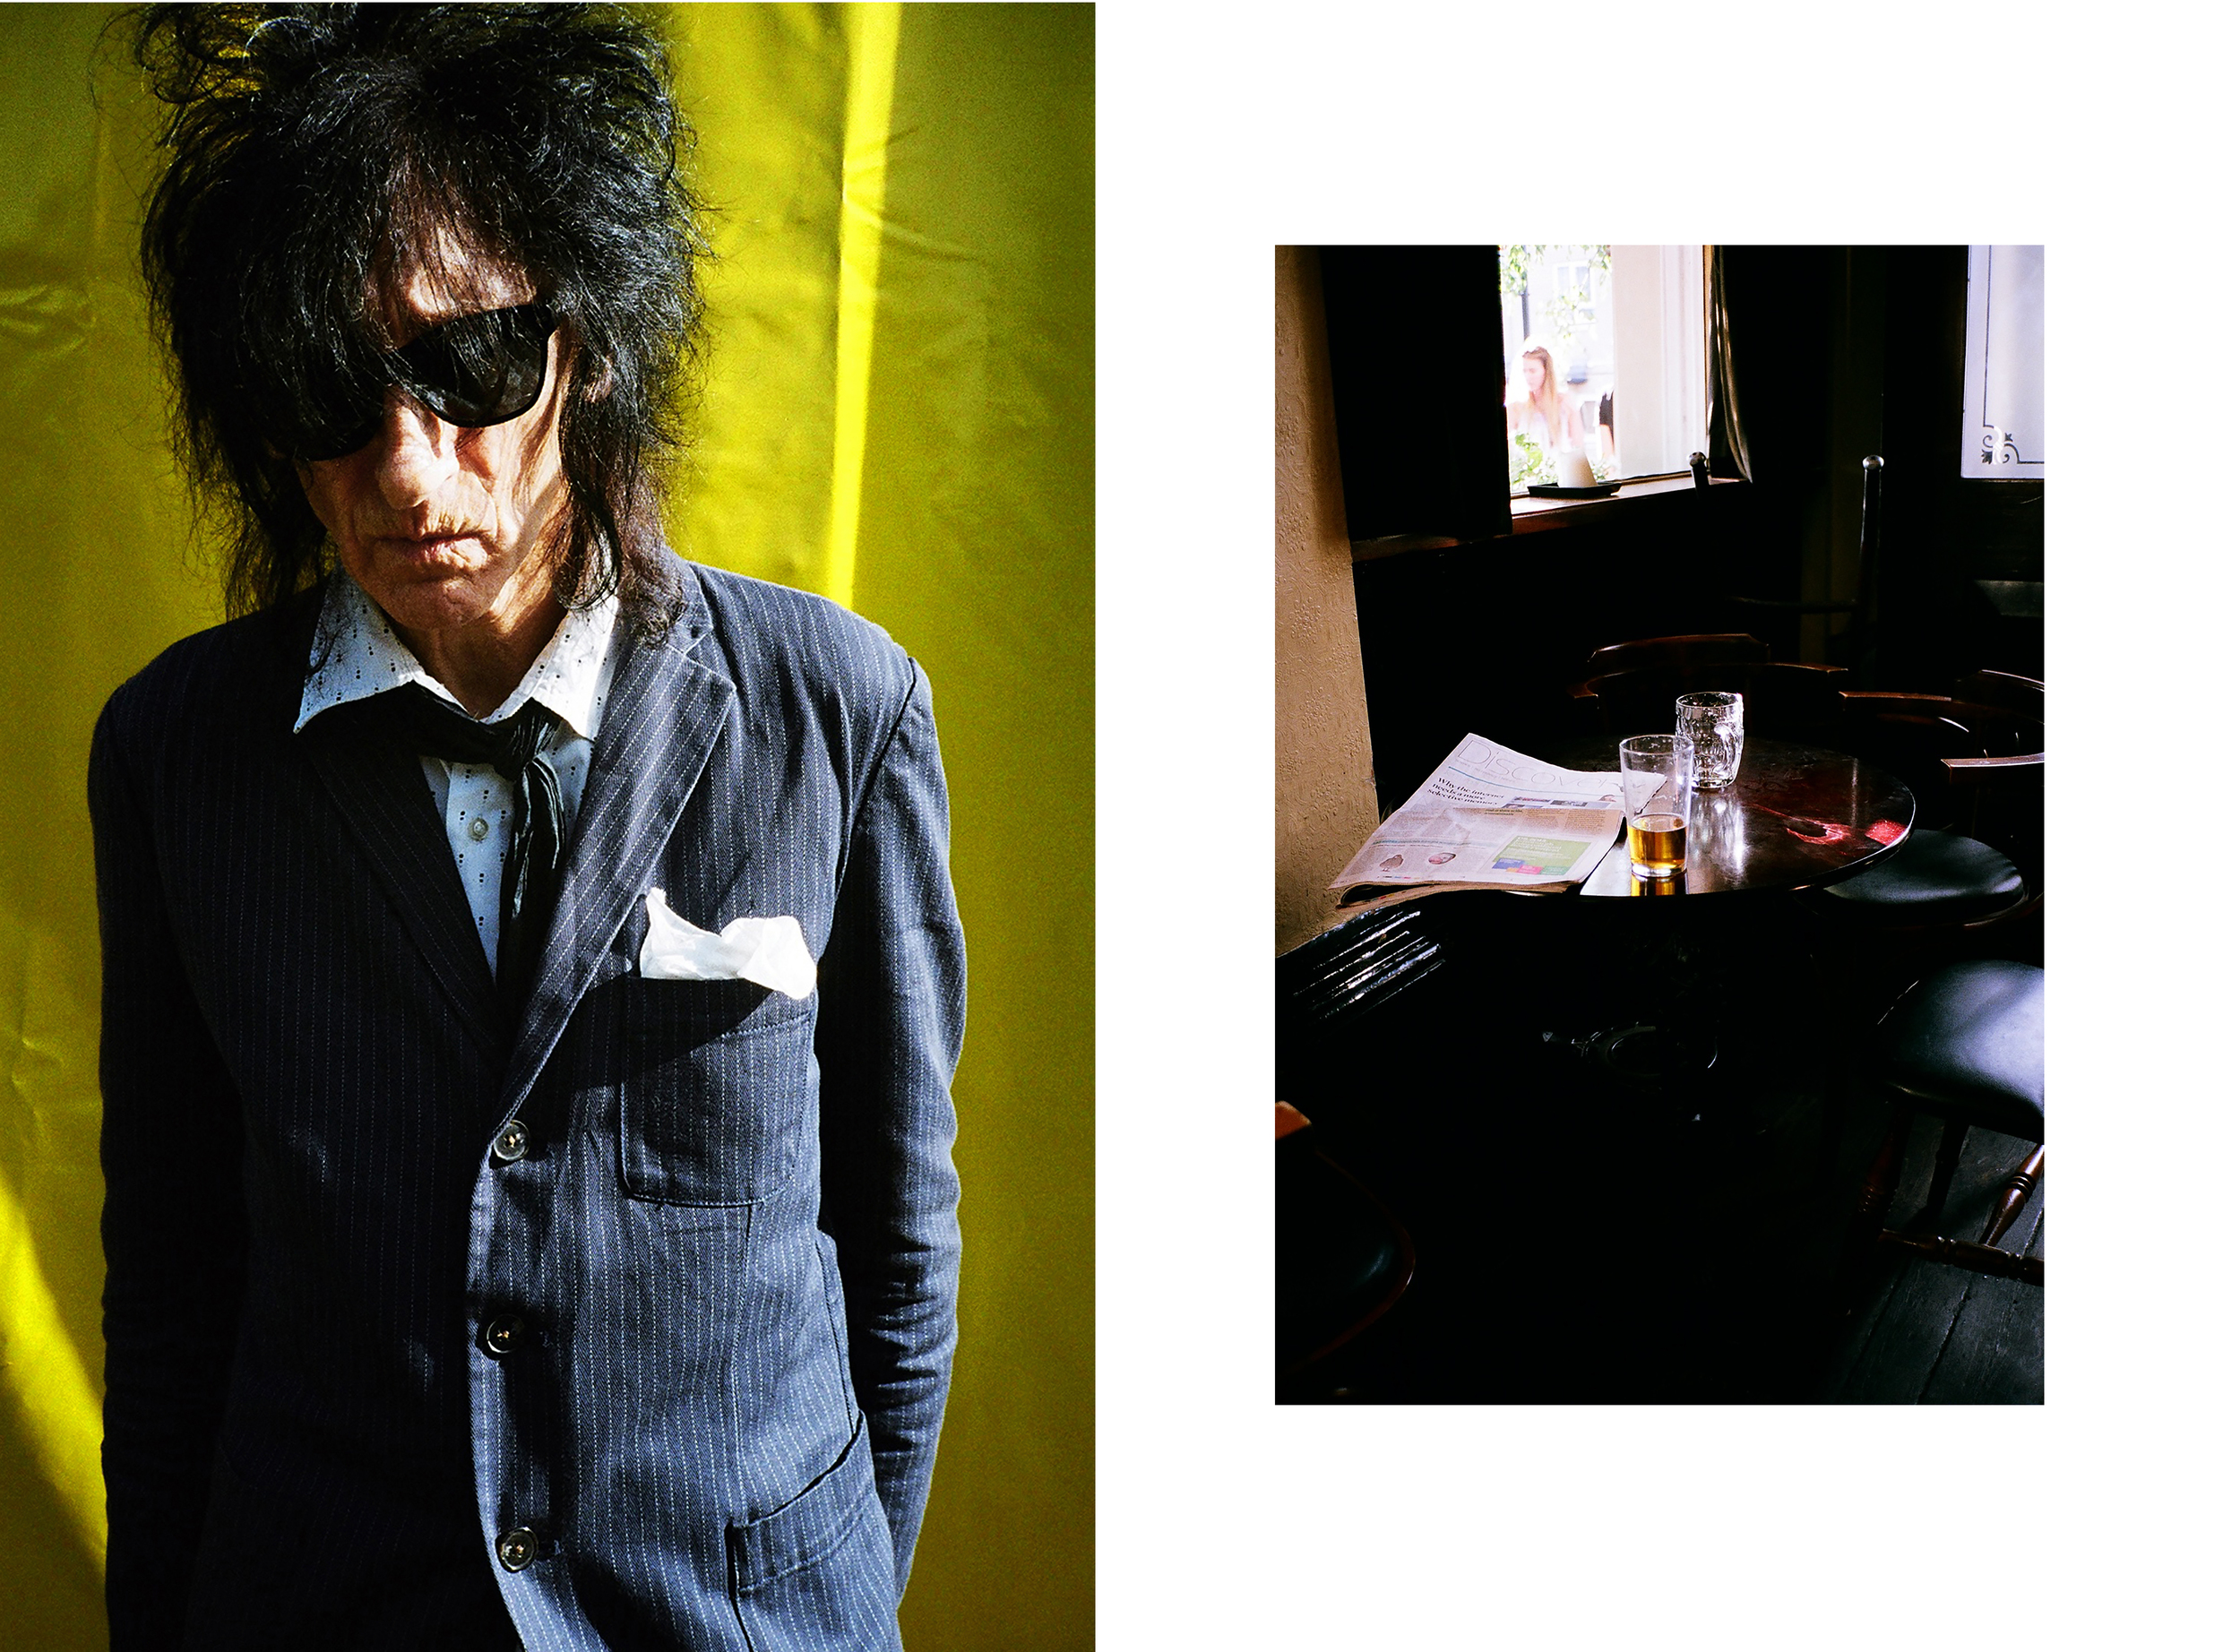 JOHN COOPER CLARKE 'YOU NEVER SEE A NIPPLE IN THE DAILY EXPRESS'